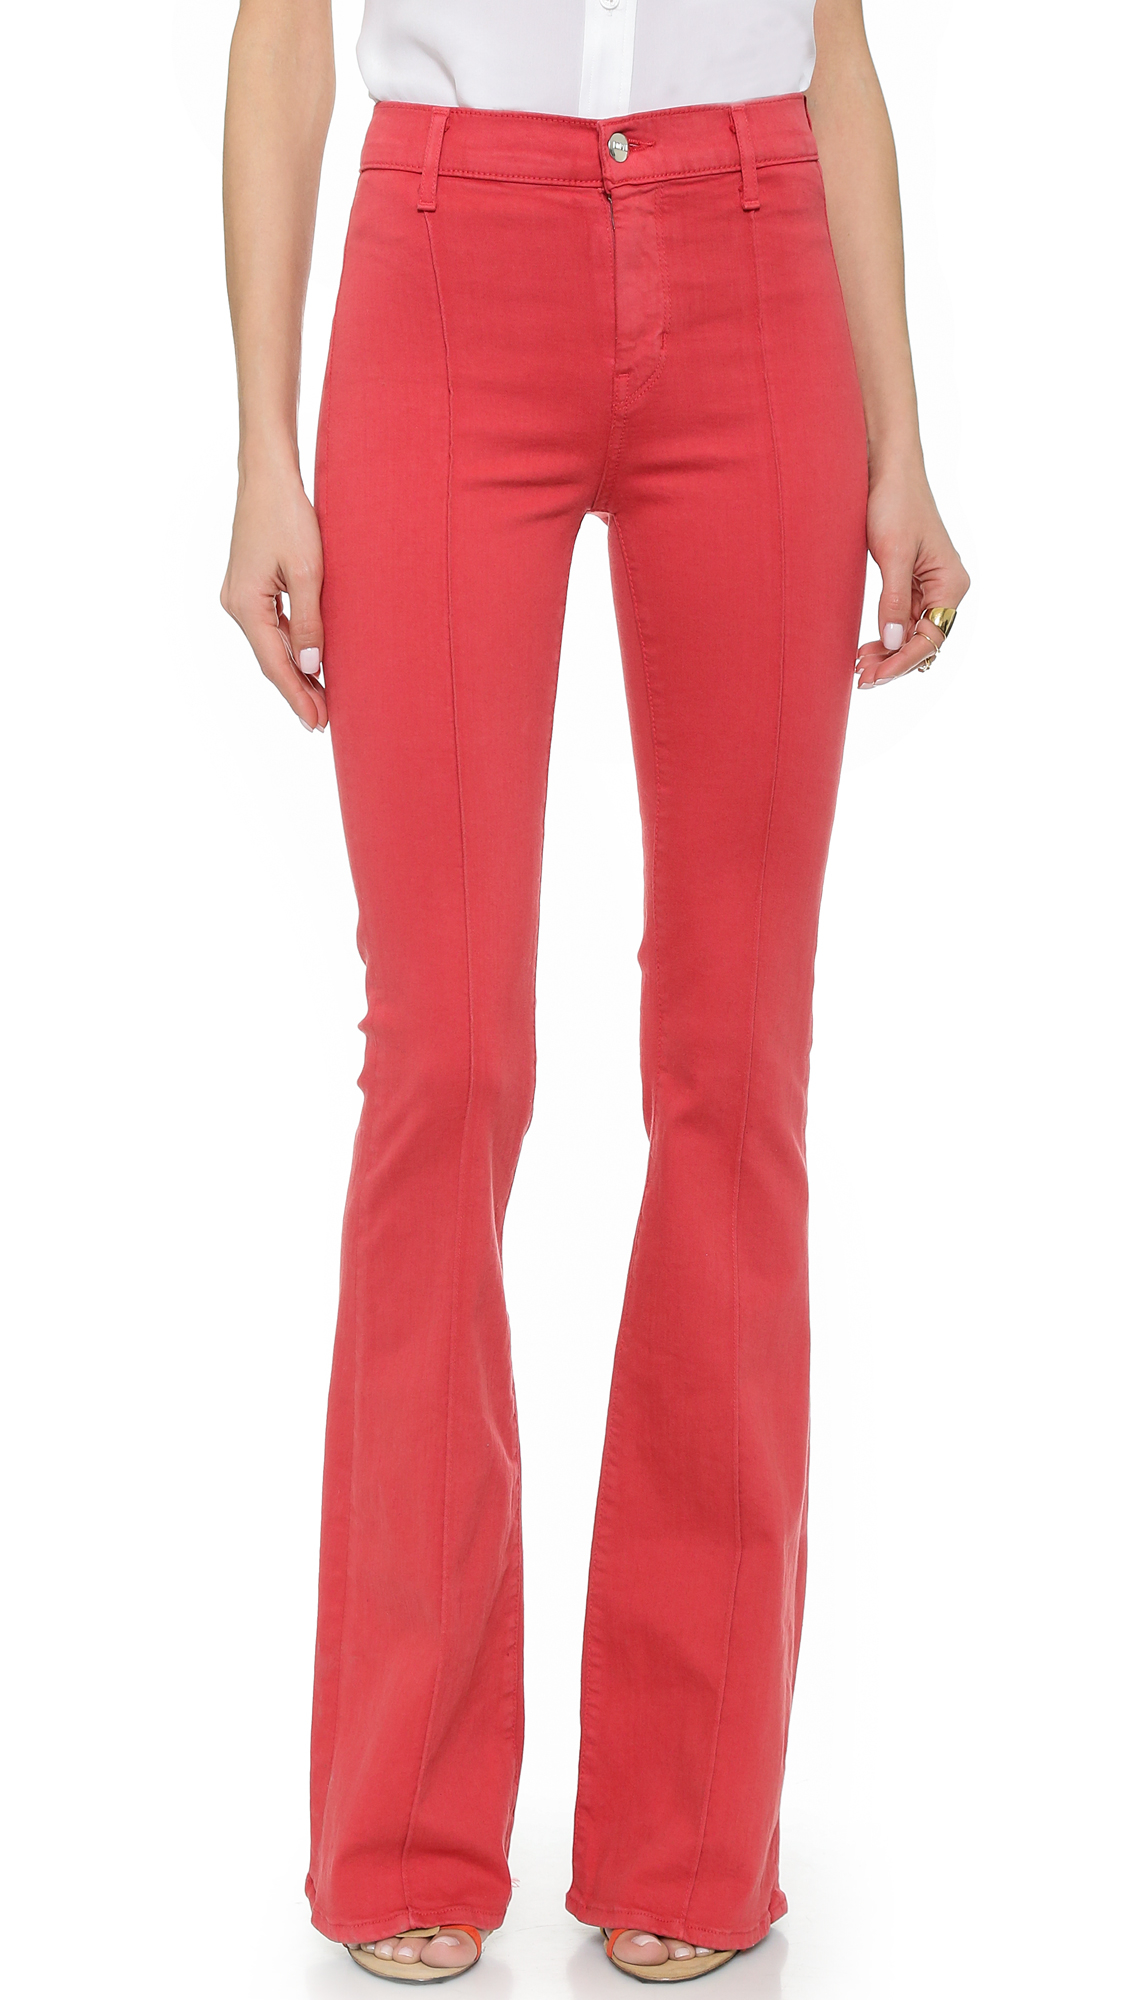 Koral High Rise Flare Jeans - Baked Apple in Pink | Lyst